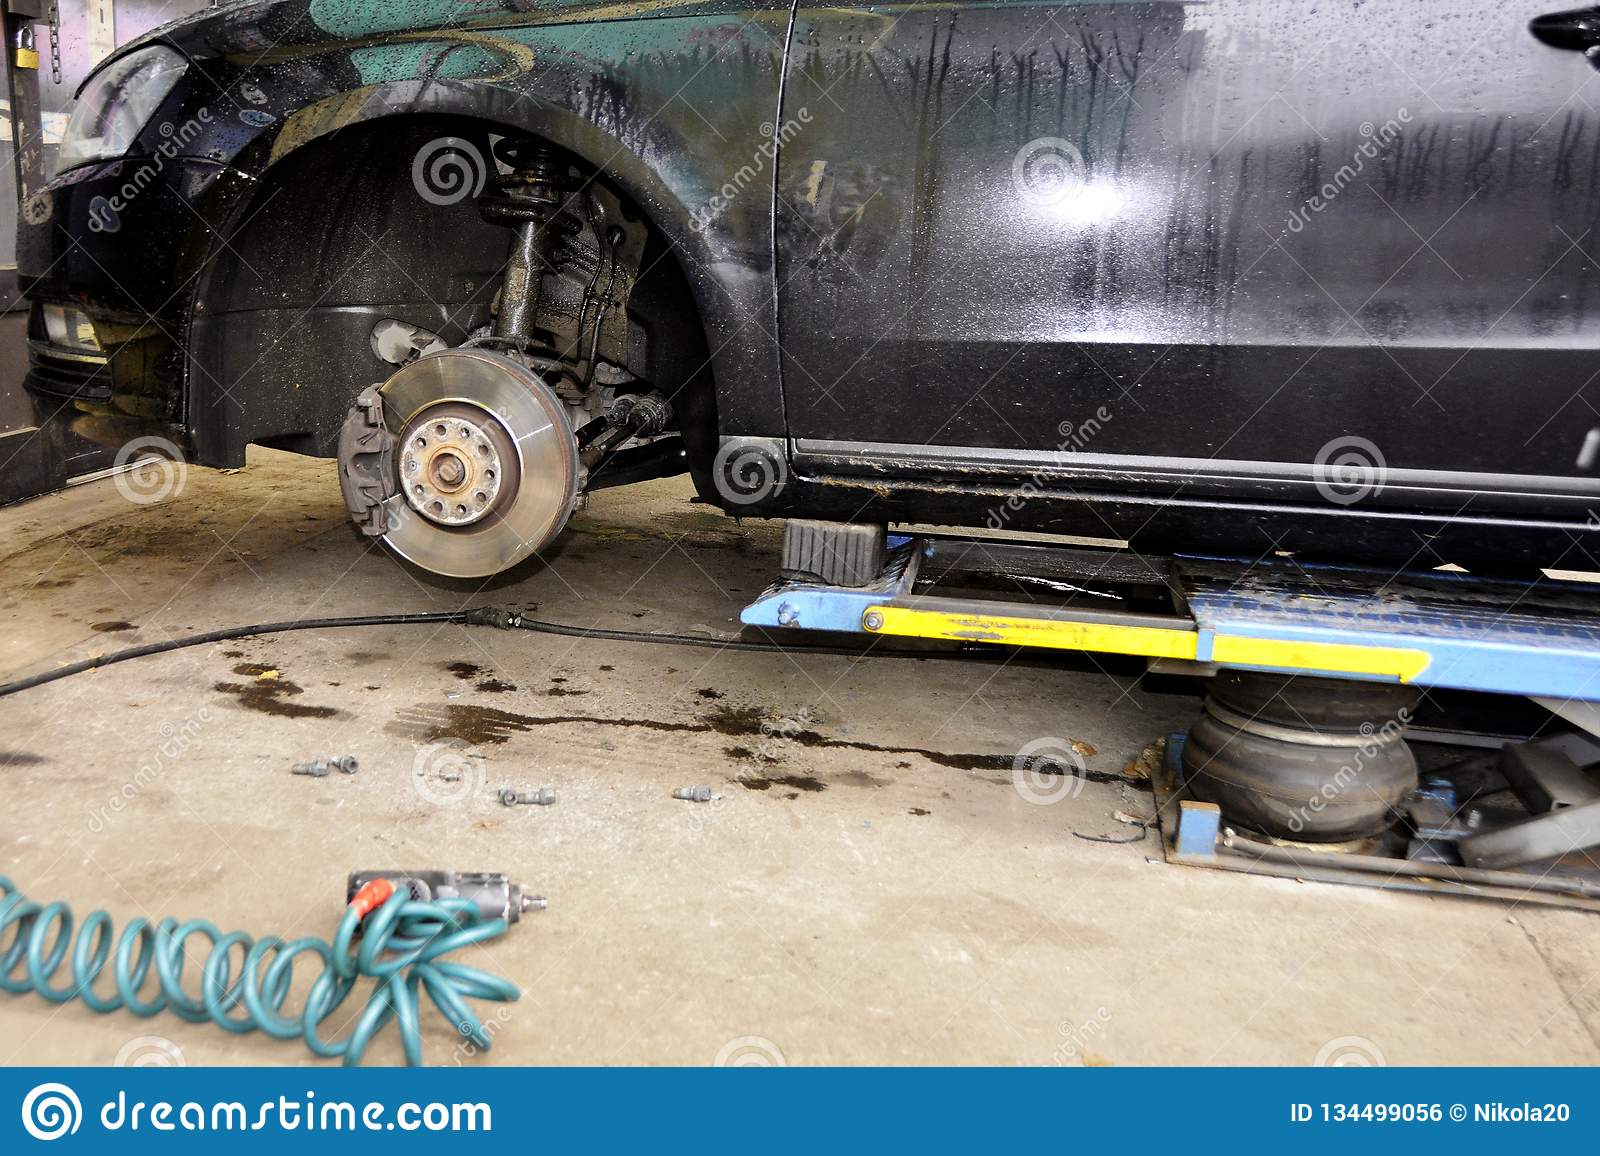 The car lifted by a pneumatic jack, wheel replacement